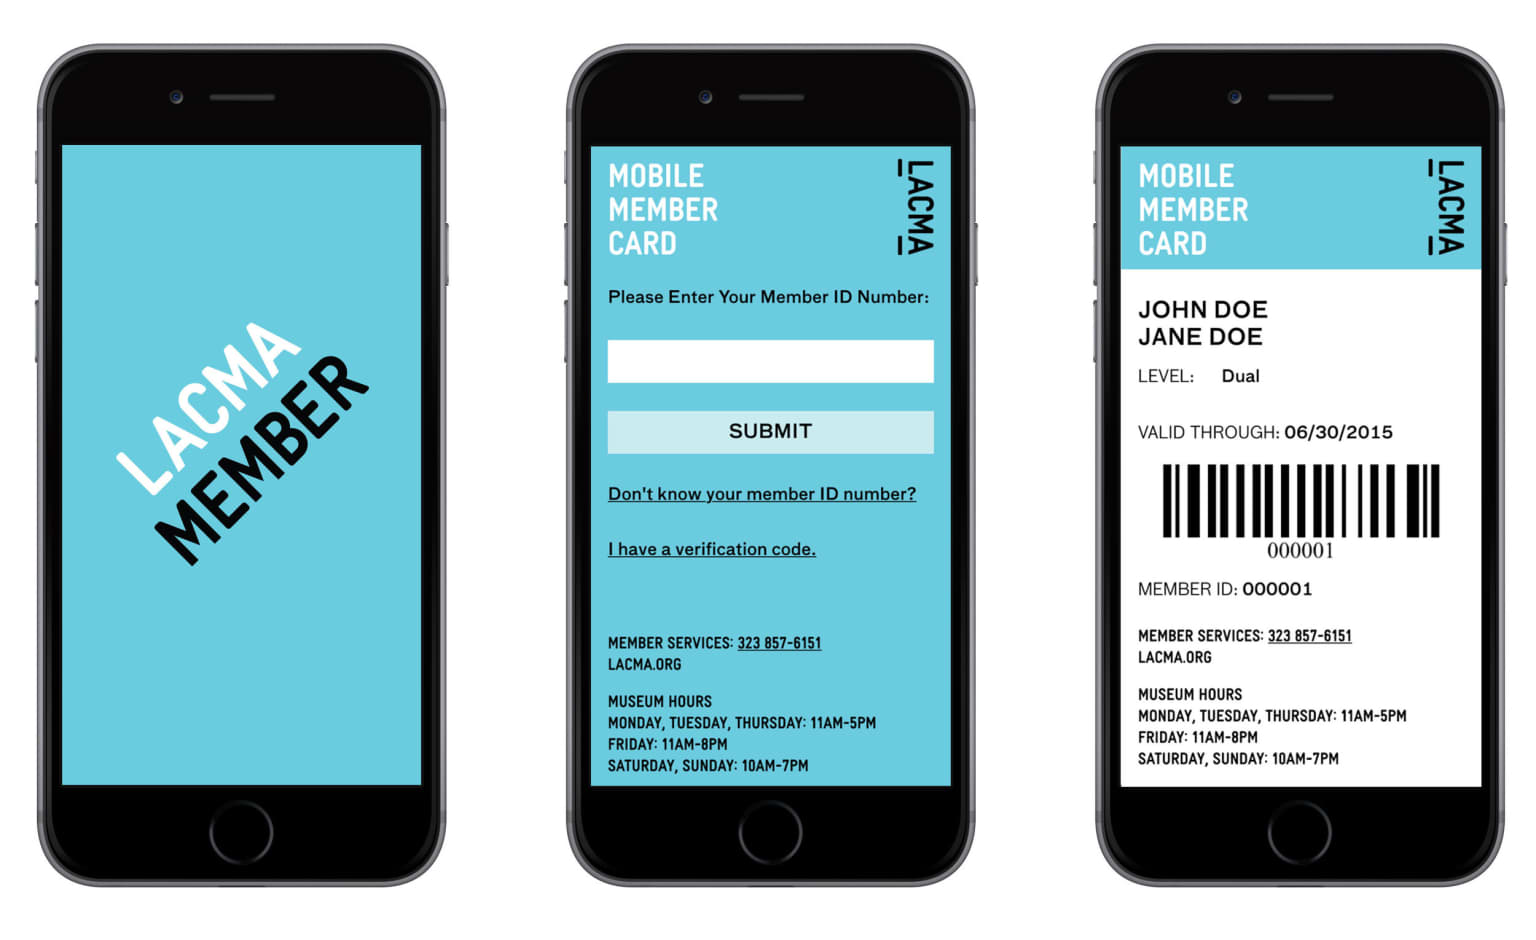 LACMA Mobile Membership Card